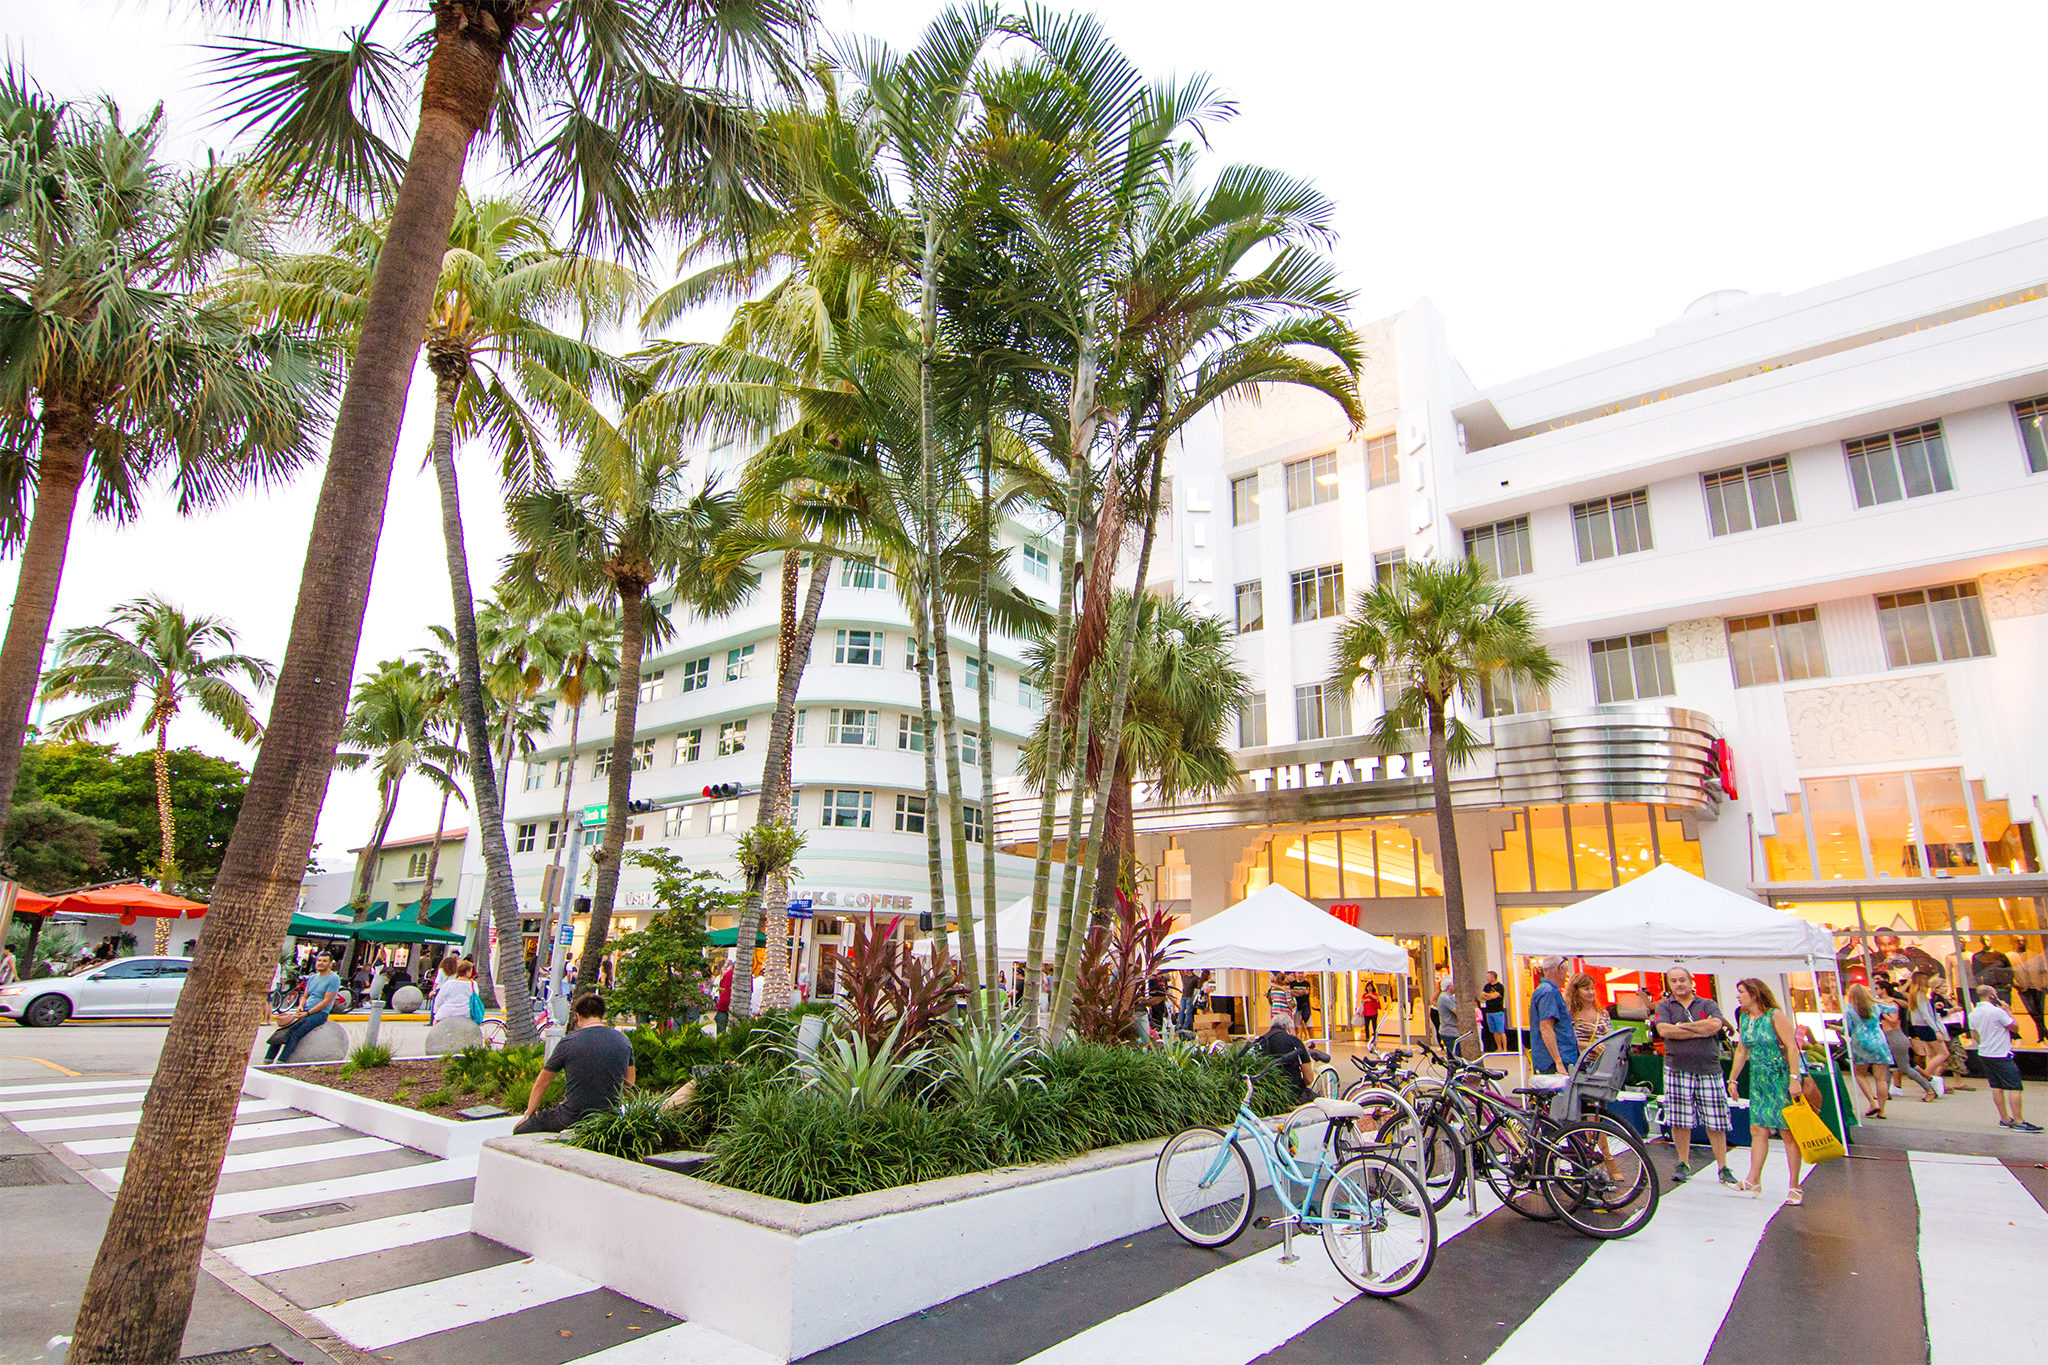 Shop, sip and snack at Lincoln Road Mall